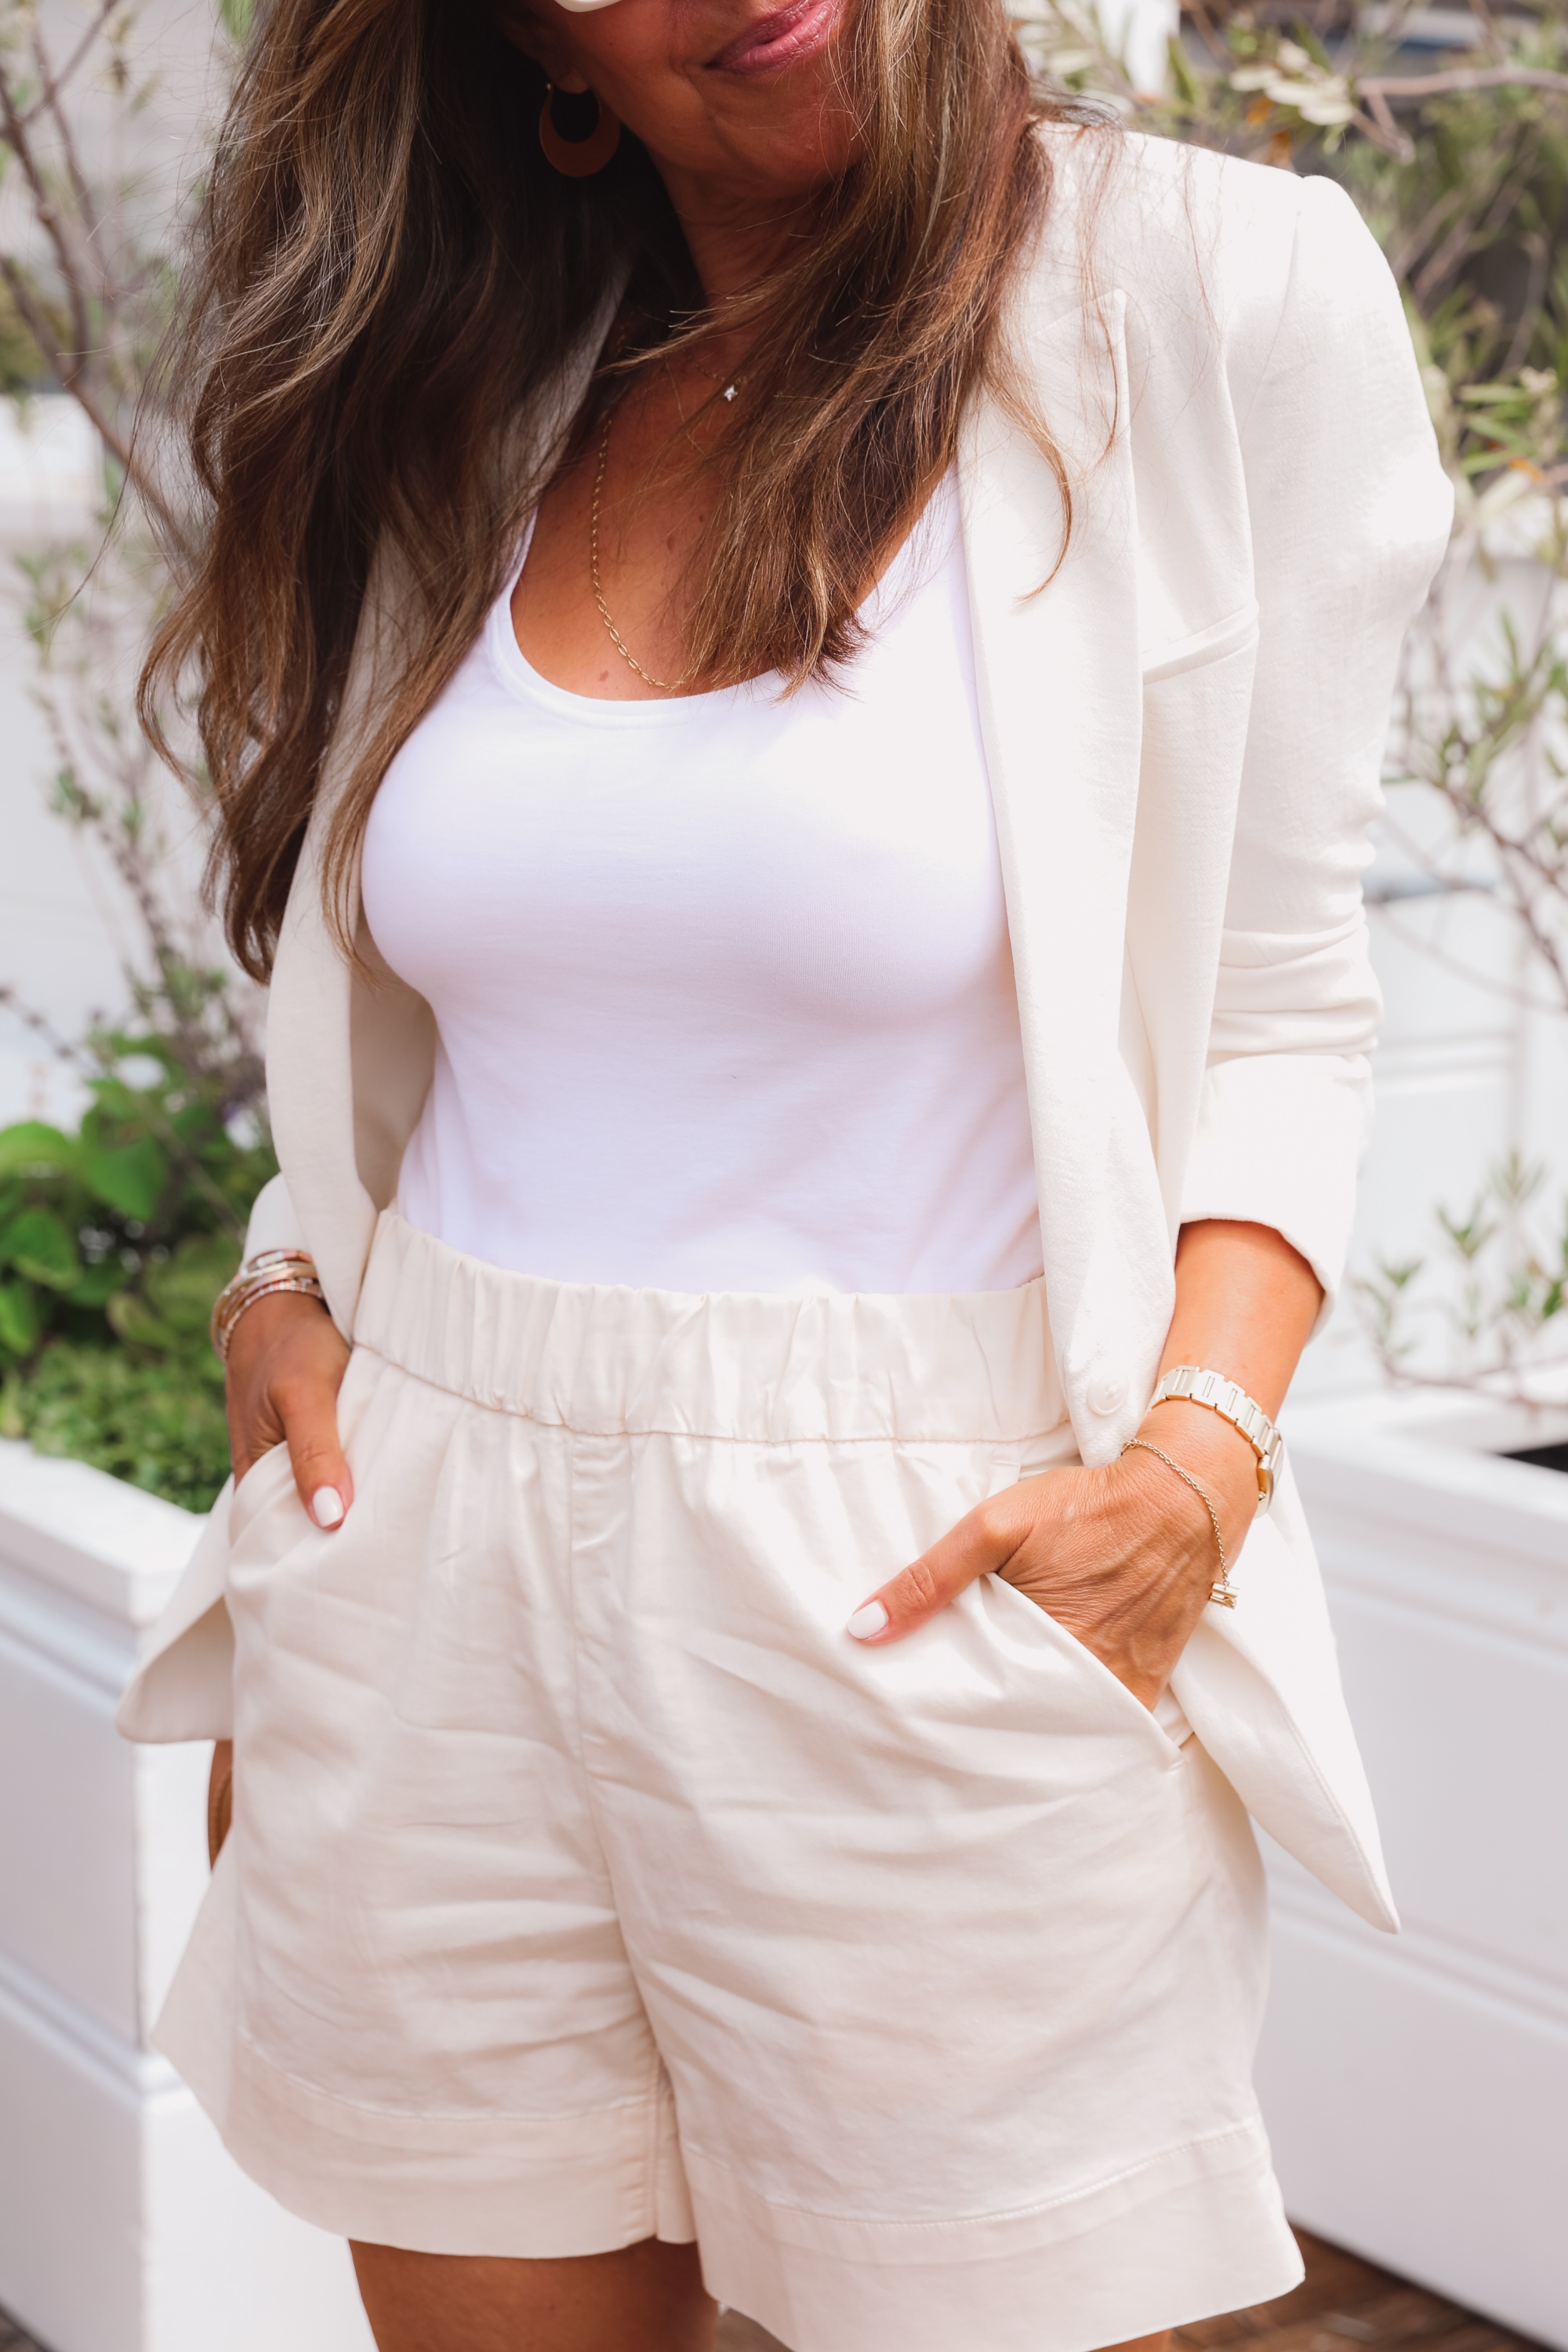 matching sets, how to wear matching sets, erin busbee, melissa meyers, who what wear, alice + olivia blazer, alice + olivia shorts, all white outfit, matching sets outfits, malibu california